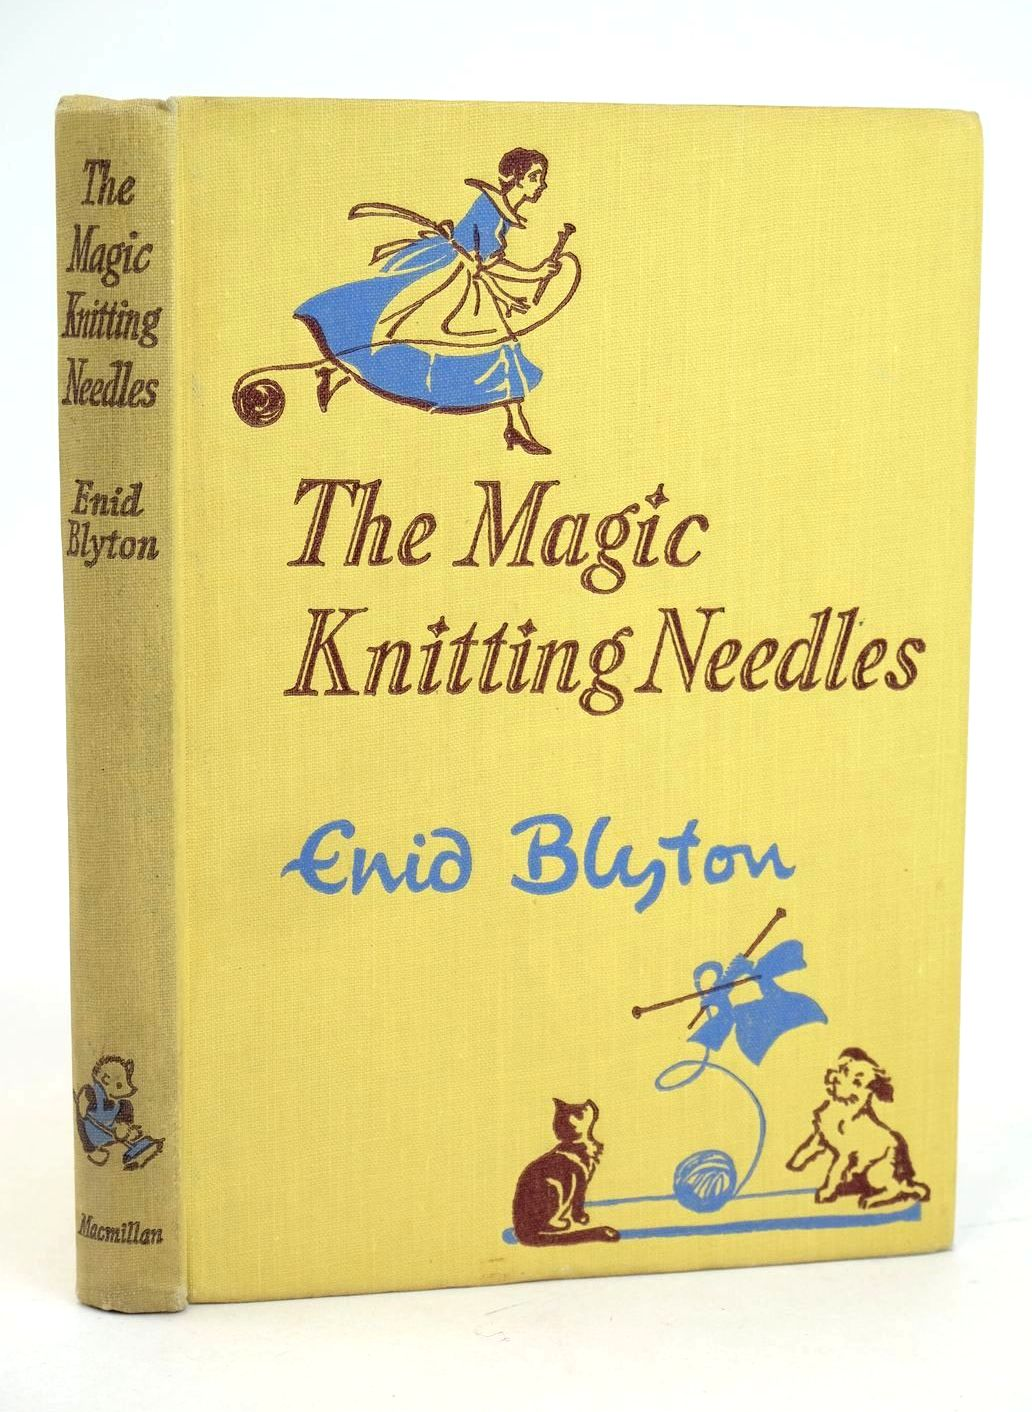 Photo of THE MAGIC KNITTING NEEDLES AND OTHER STORIES written by Blyton, Enid illustrated by Soper, Eileen published by Macmillan & Co. Ltd. (STOCK CODE: 1318989)  for sale by Stella & Rose's Books